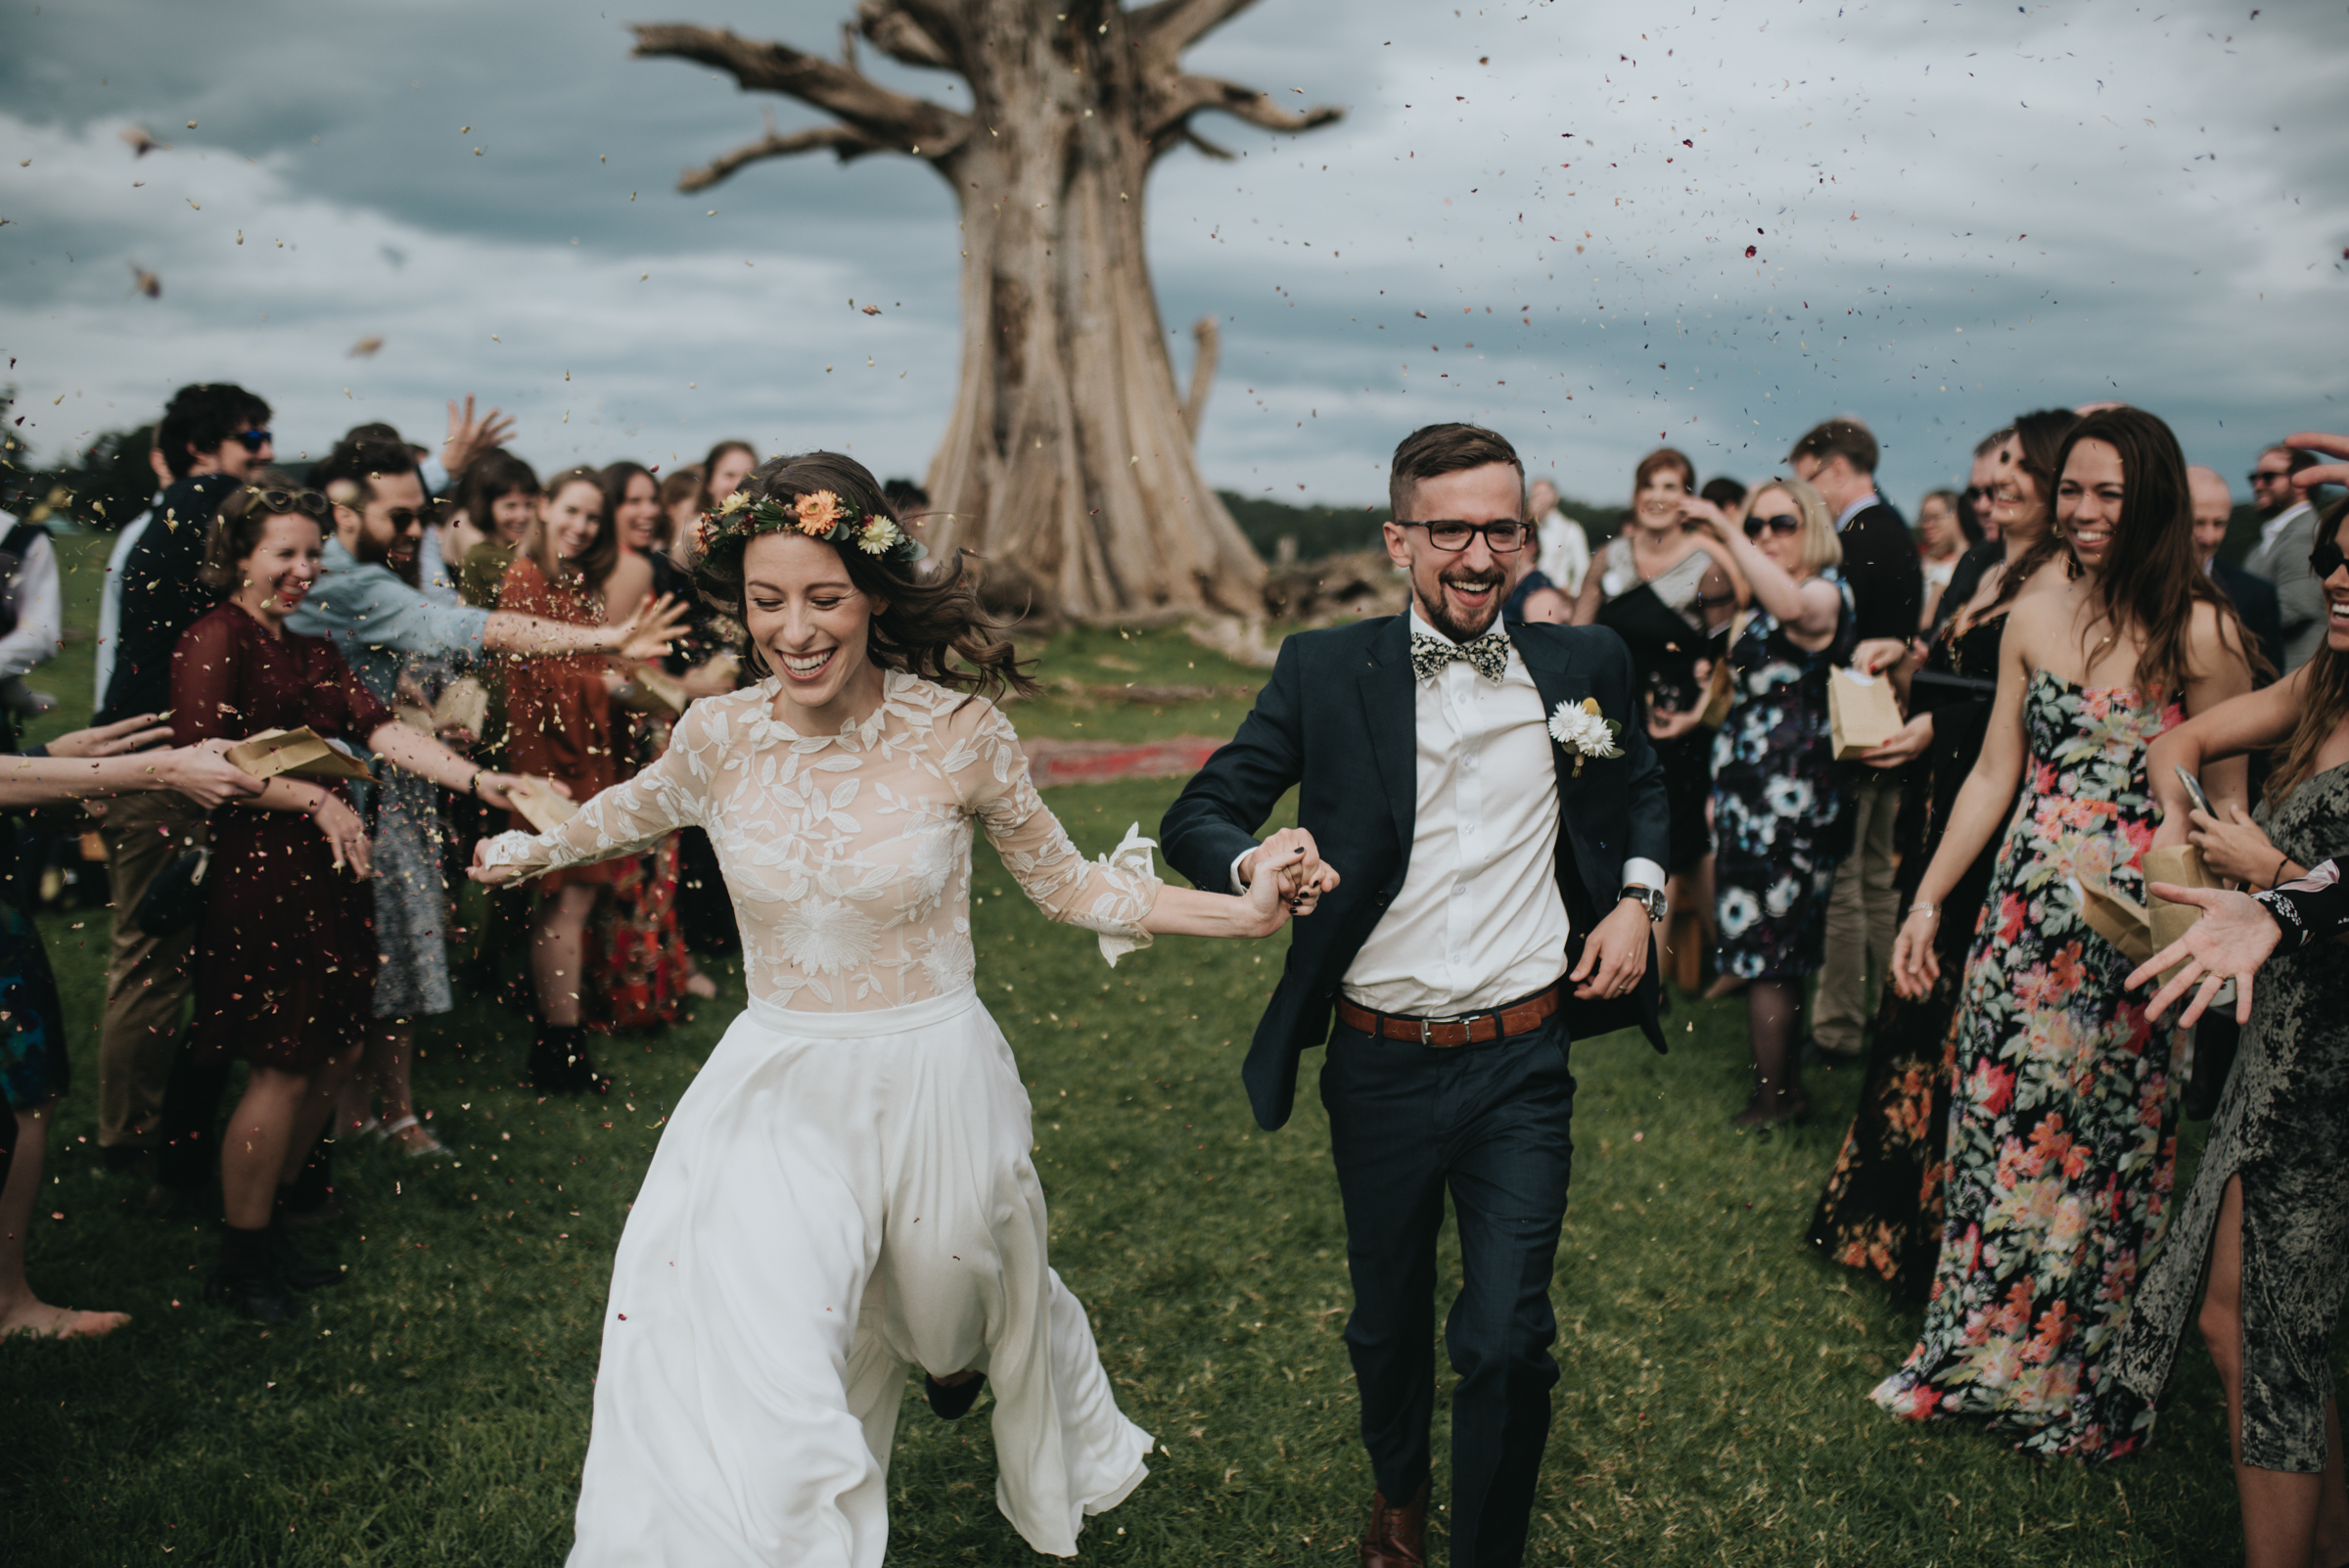 couple-running-down-outdoor-aisle-ben-sowry-photo